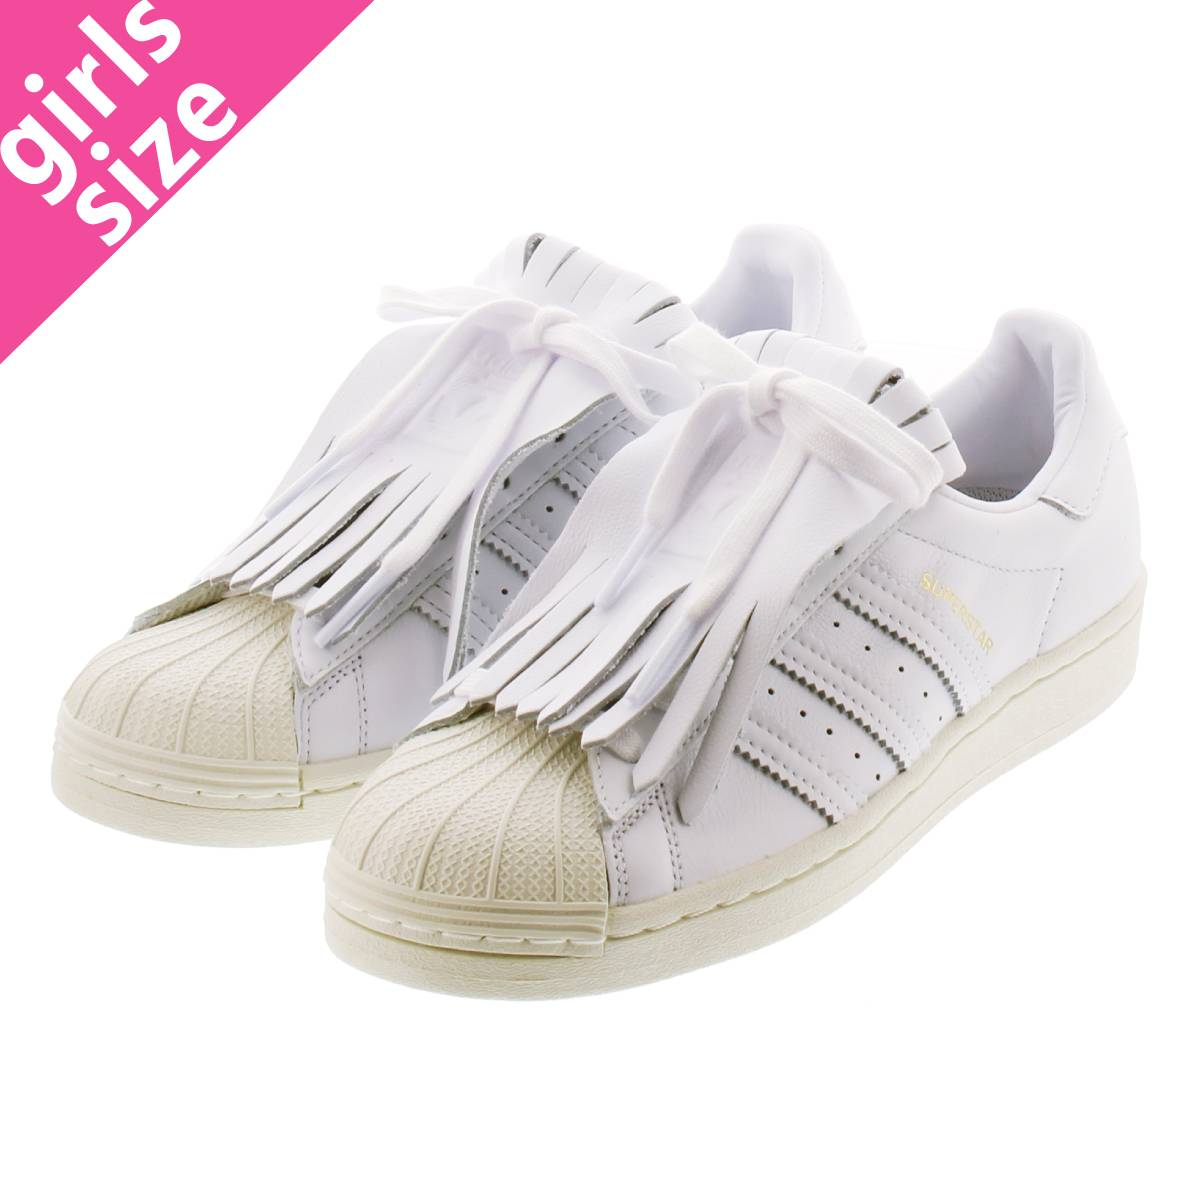 adidas SUPERSTAR FR W アディダス スーパースター フリンジ ウィメンズ FTWR WHITE/OFF WHITE/GOLD METALLIC fv3421